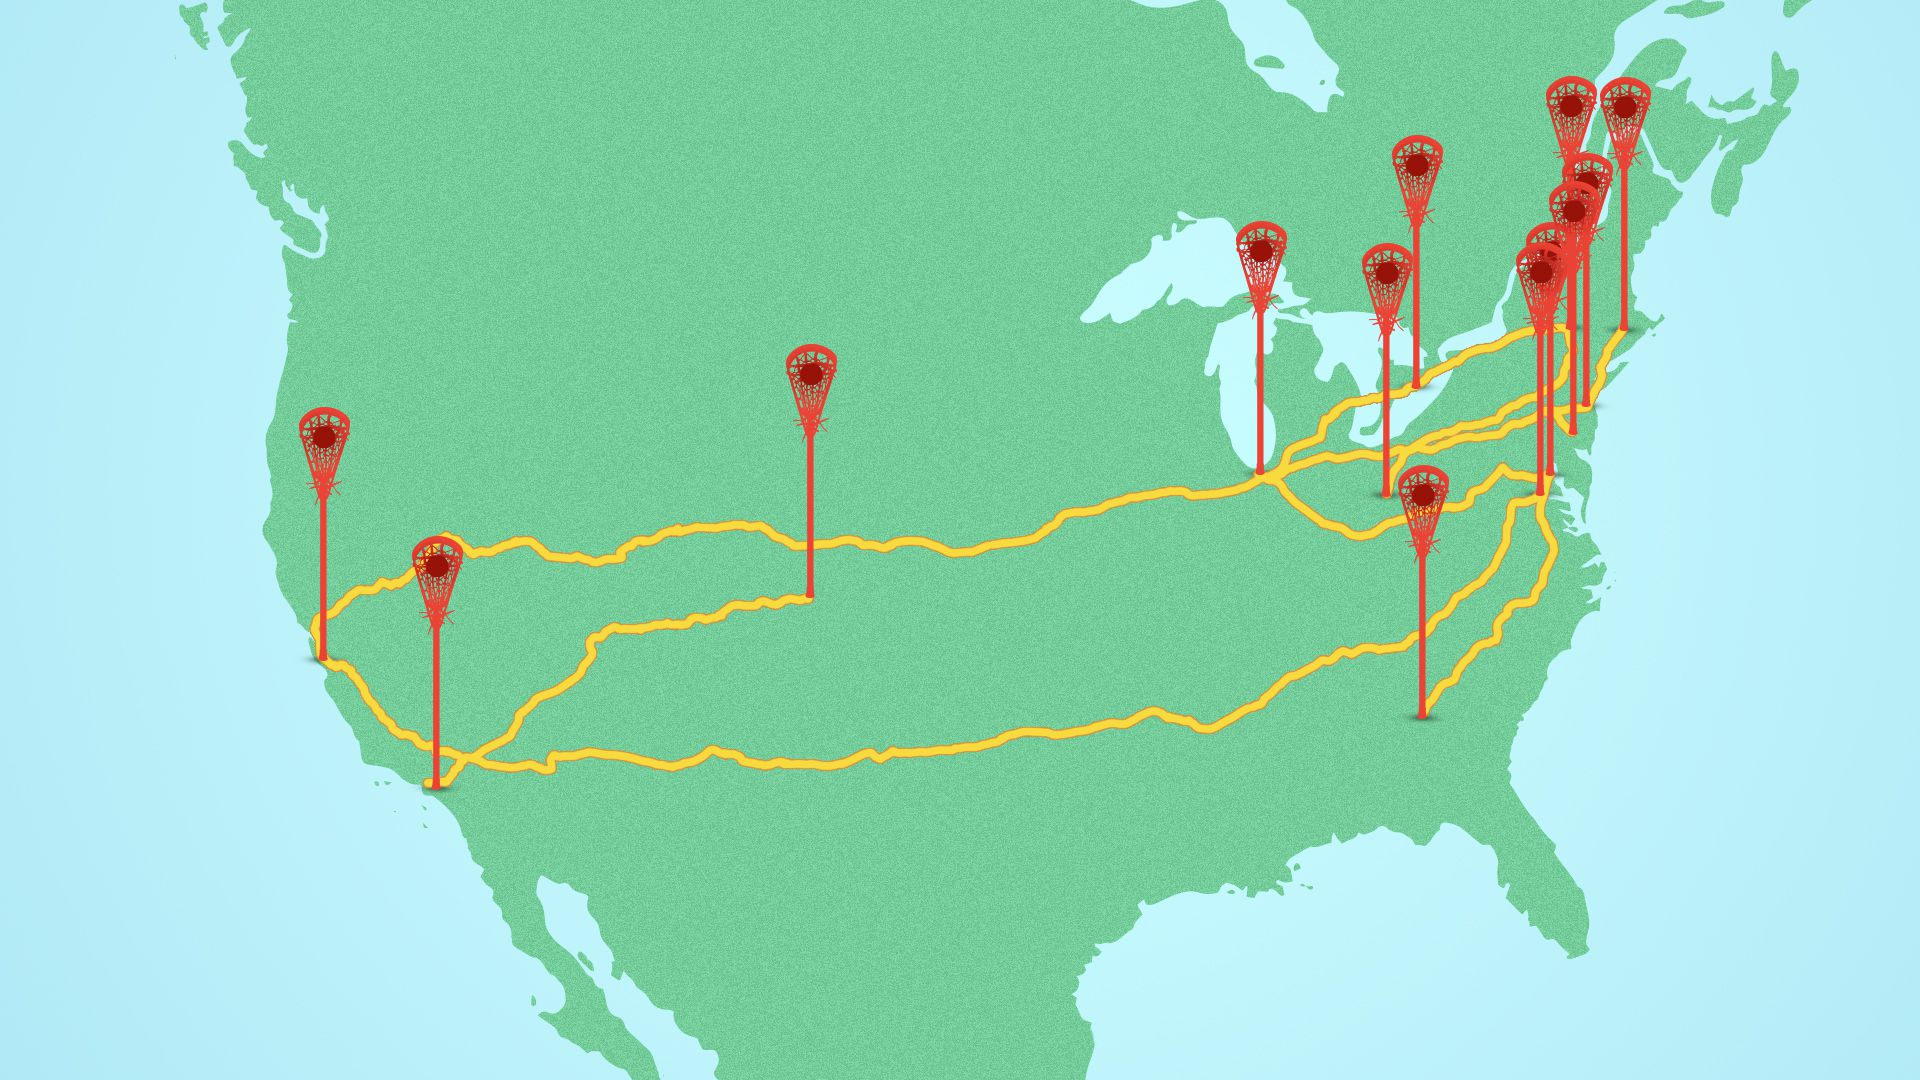 Illustration of a map of the USA and Canada, with pinpoints shaped like crosses along the route taken by the PLL